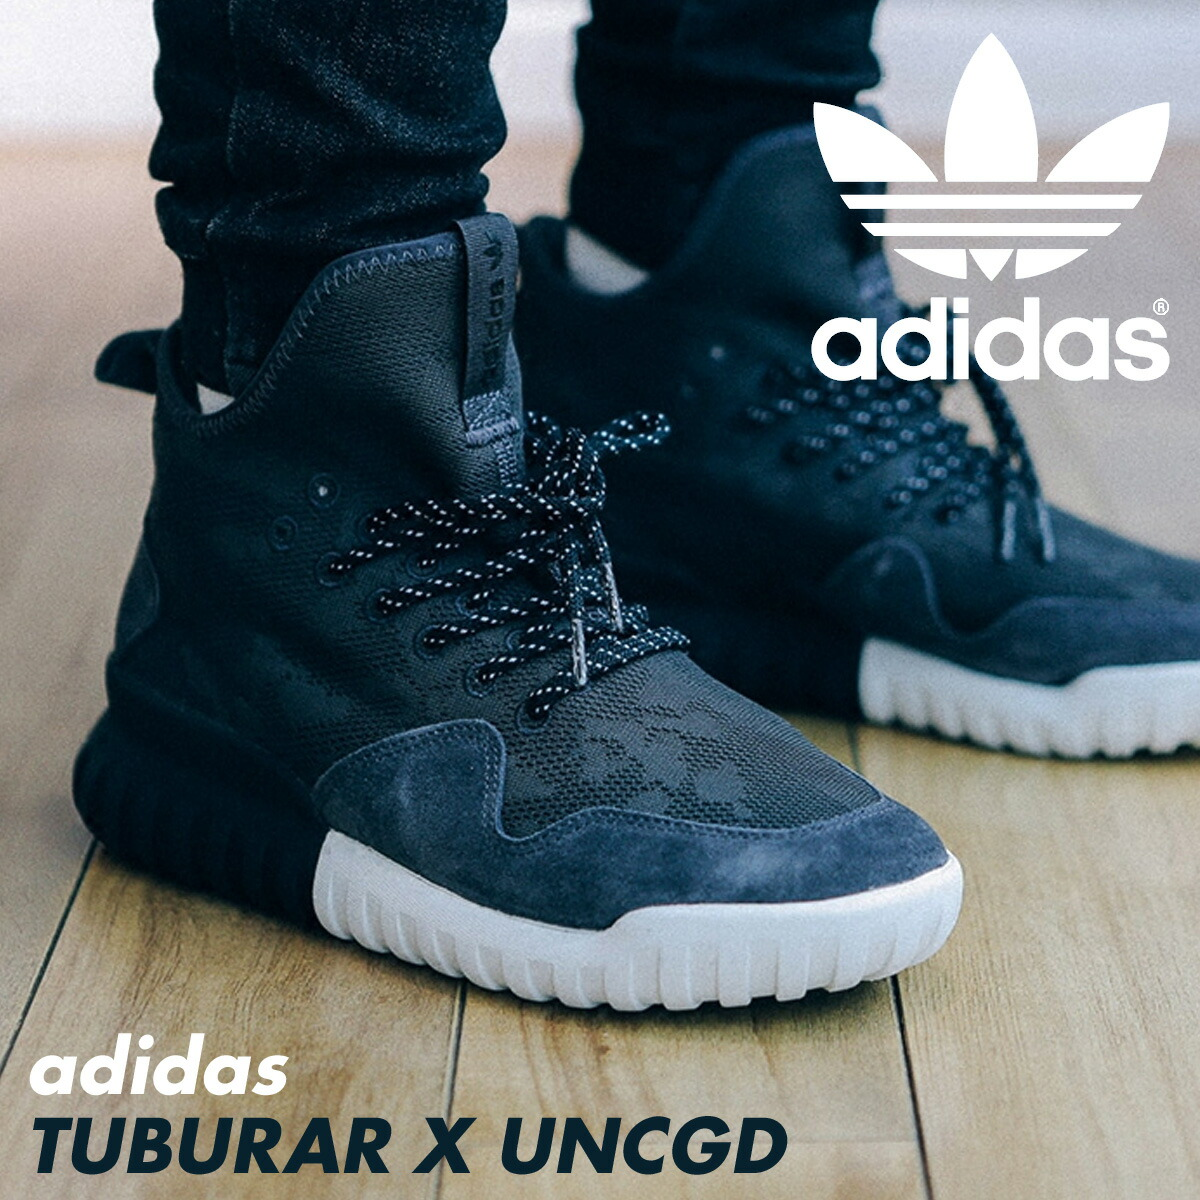 Damen Adidas Originals Tubular Uncgd